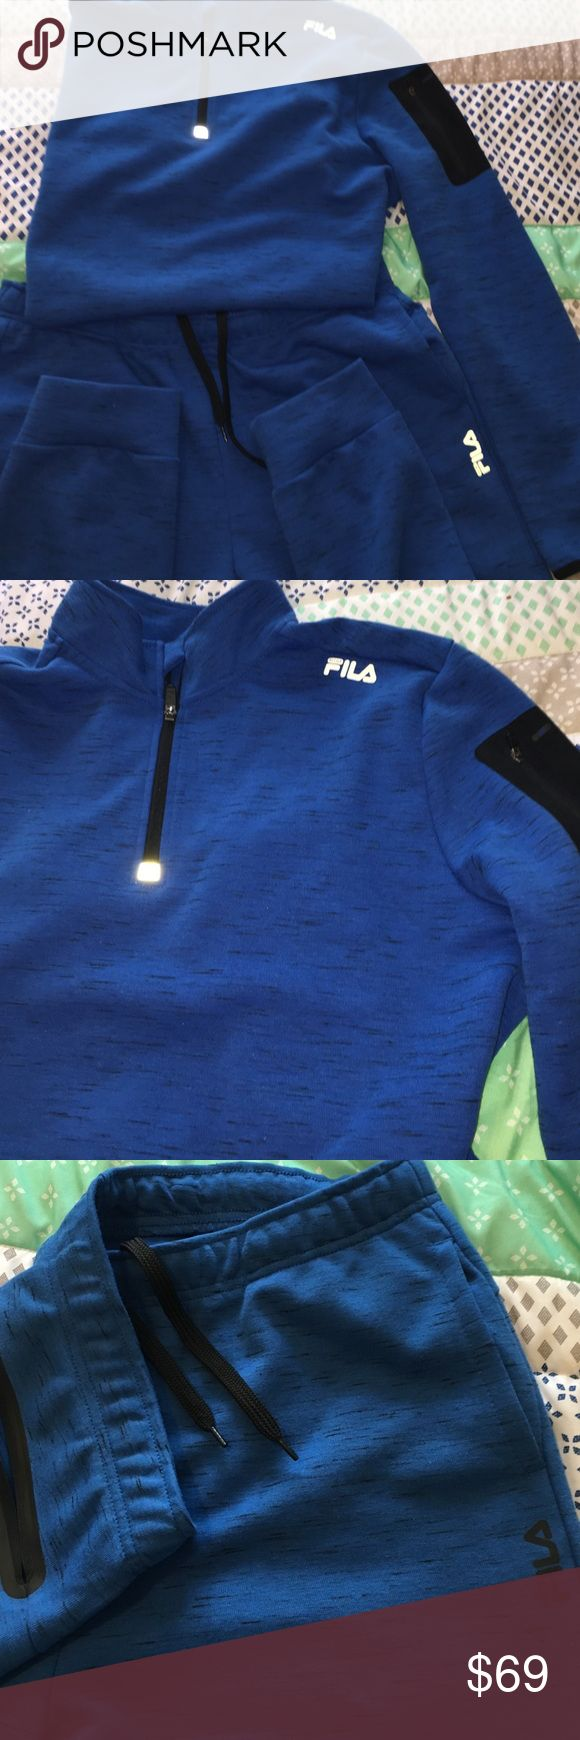 NWOT Royal Blue Fila Sport Jacket&Jogger Suit!!🔥 NWOT, just purchased yesterday and doesn't fit. Took tags off but never worn, never washed, wicked comfy, great look! Brand new item, in new line. Fila Pants Sweatpants & Joggers